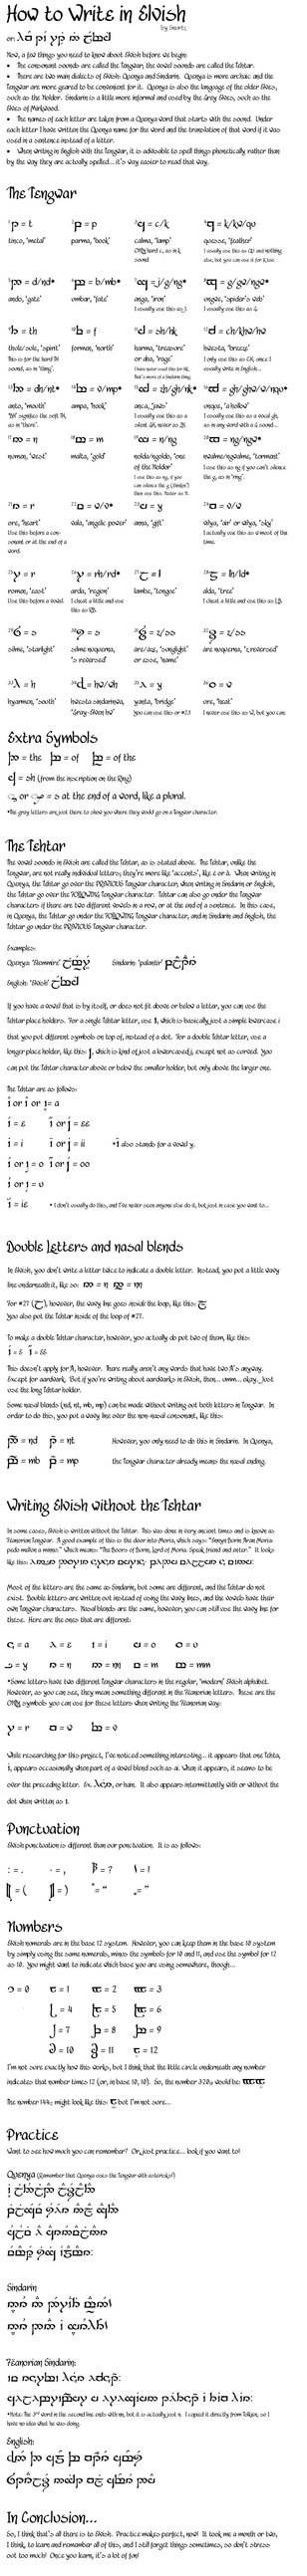 How to write in elvish... Way cool